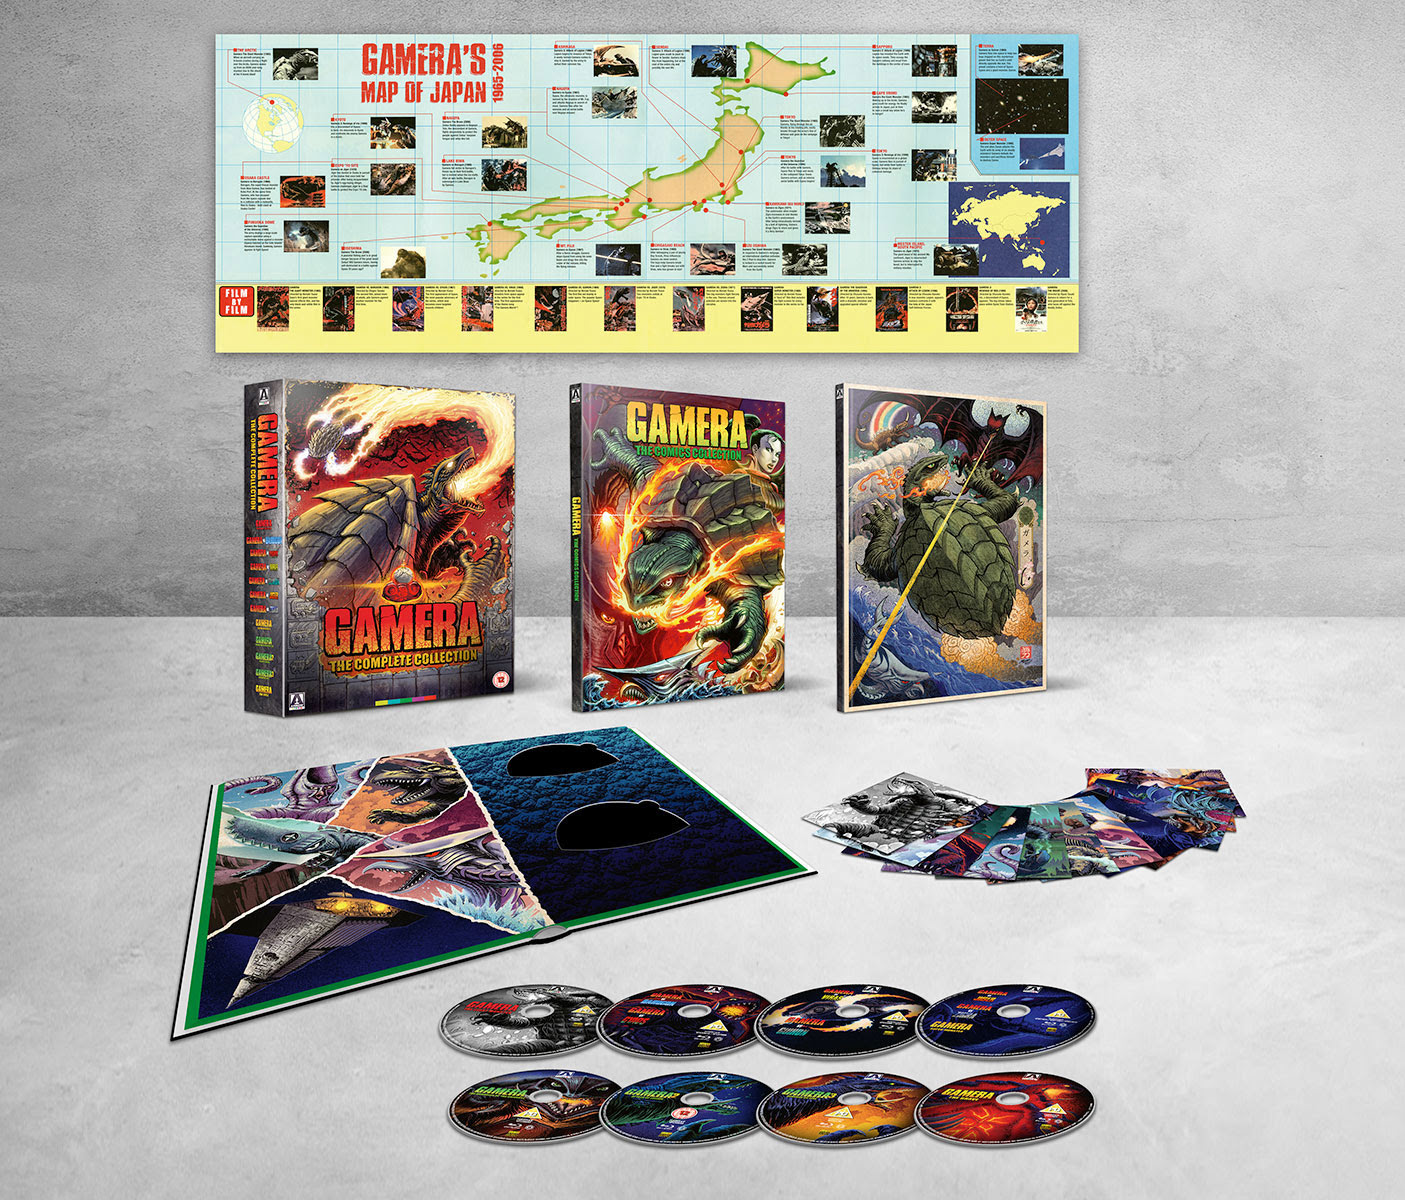 Gamera: The Complete Collection Limited Edition Box Set